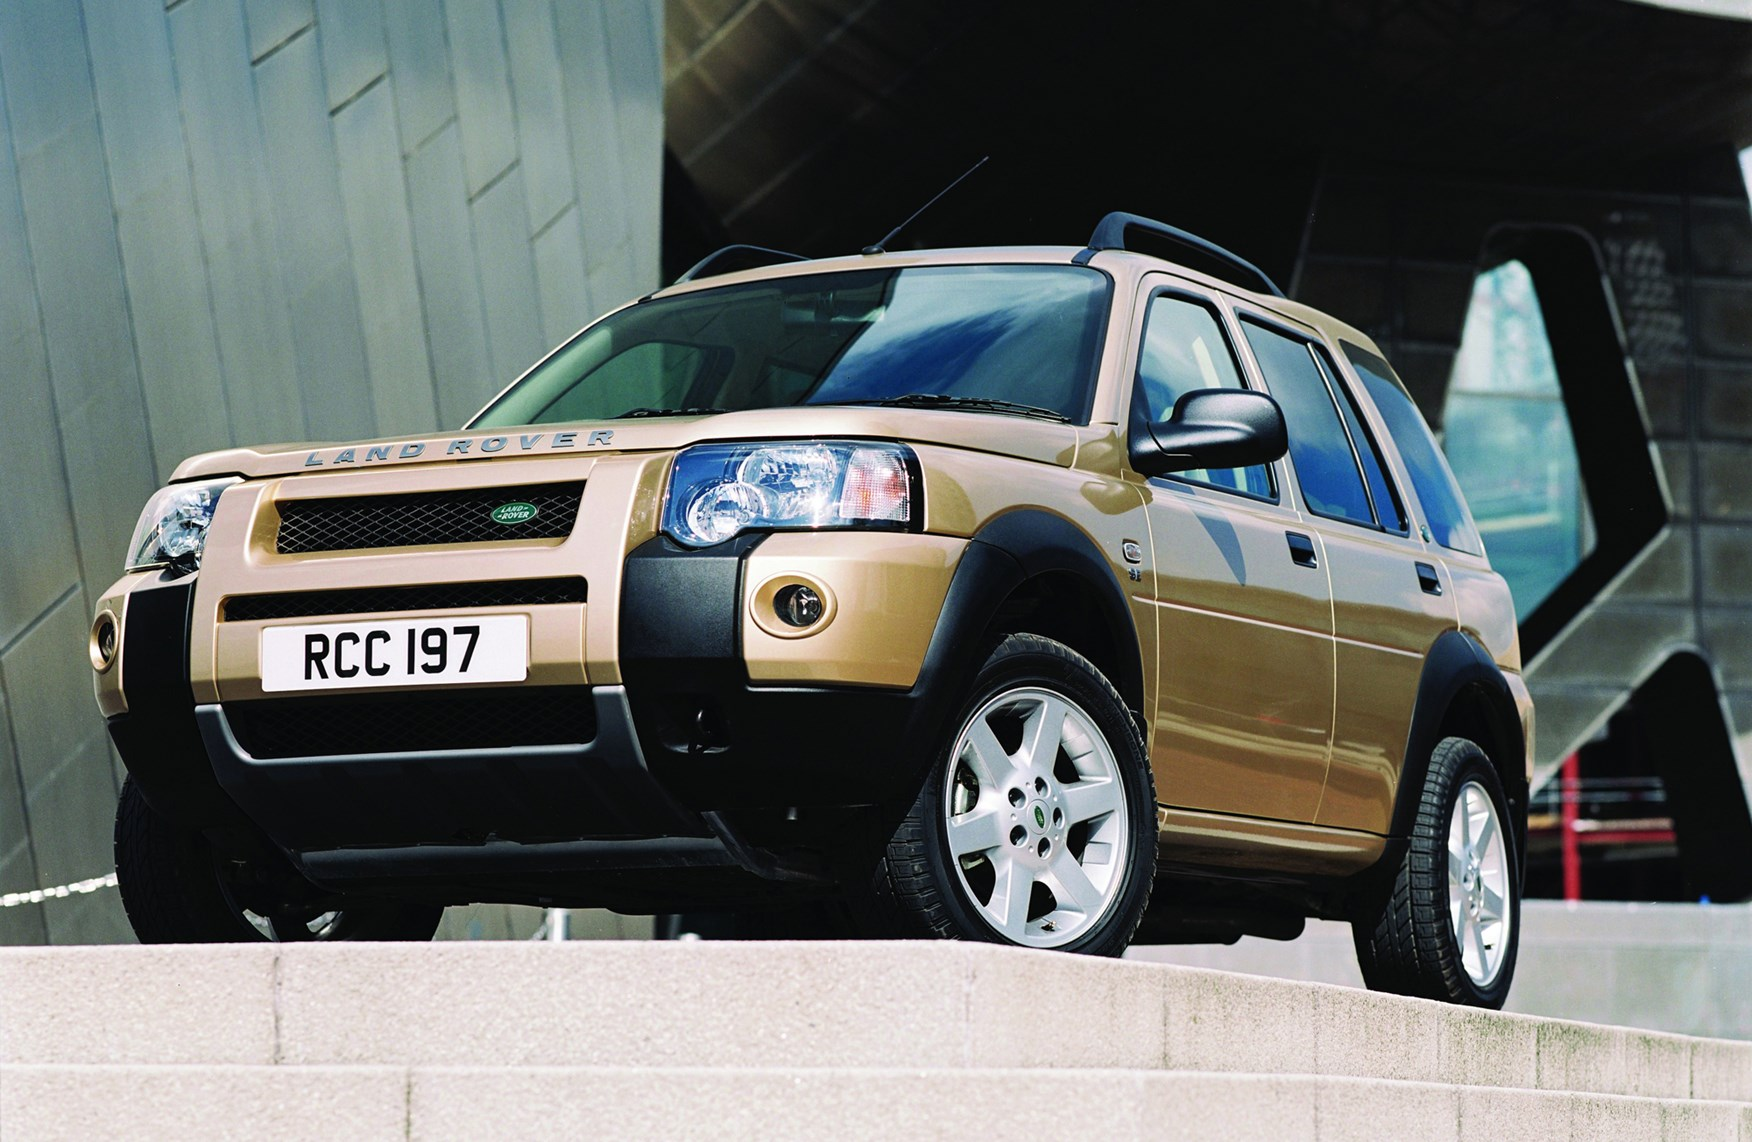 land landrover specs callaway pictures information rover parts freelander